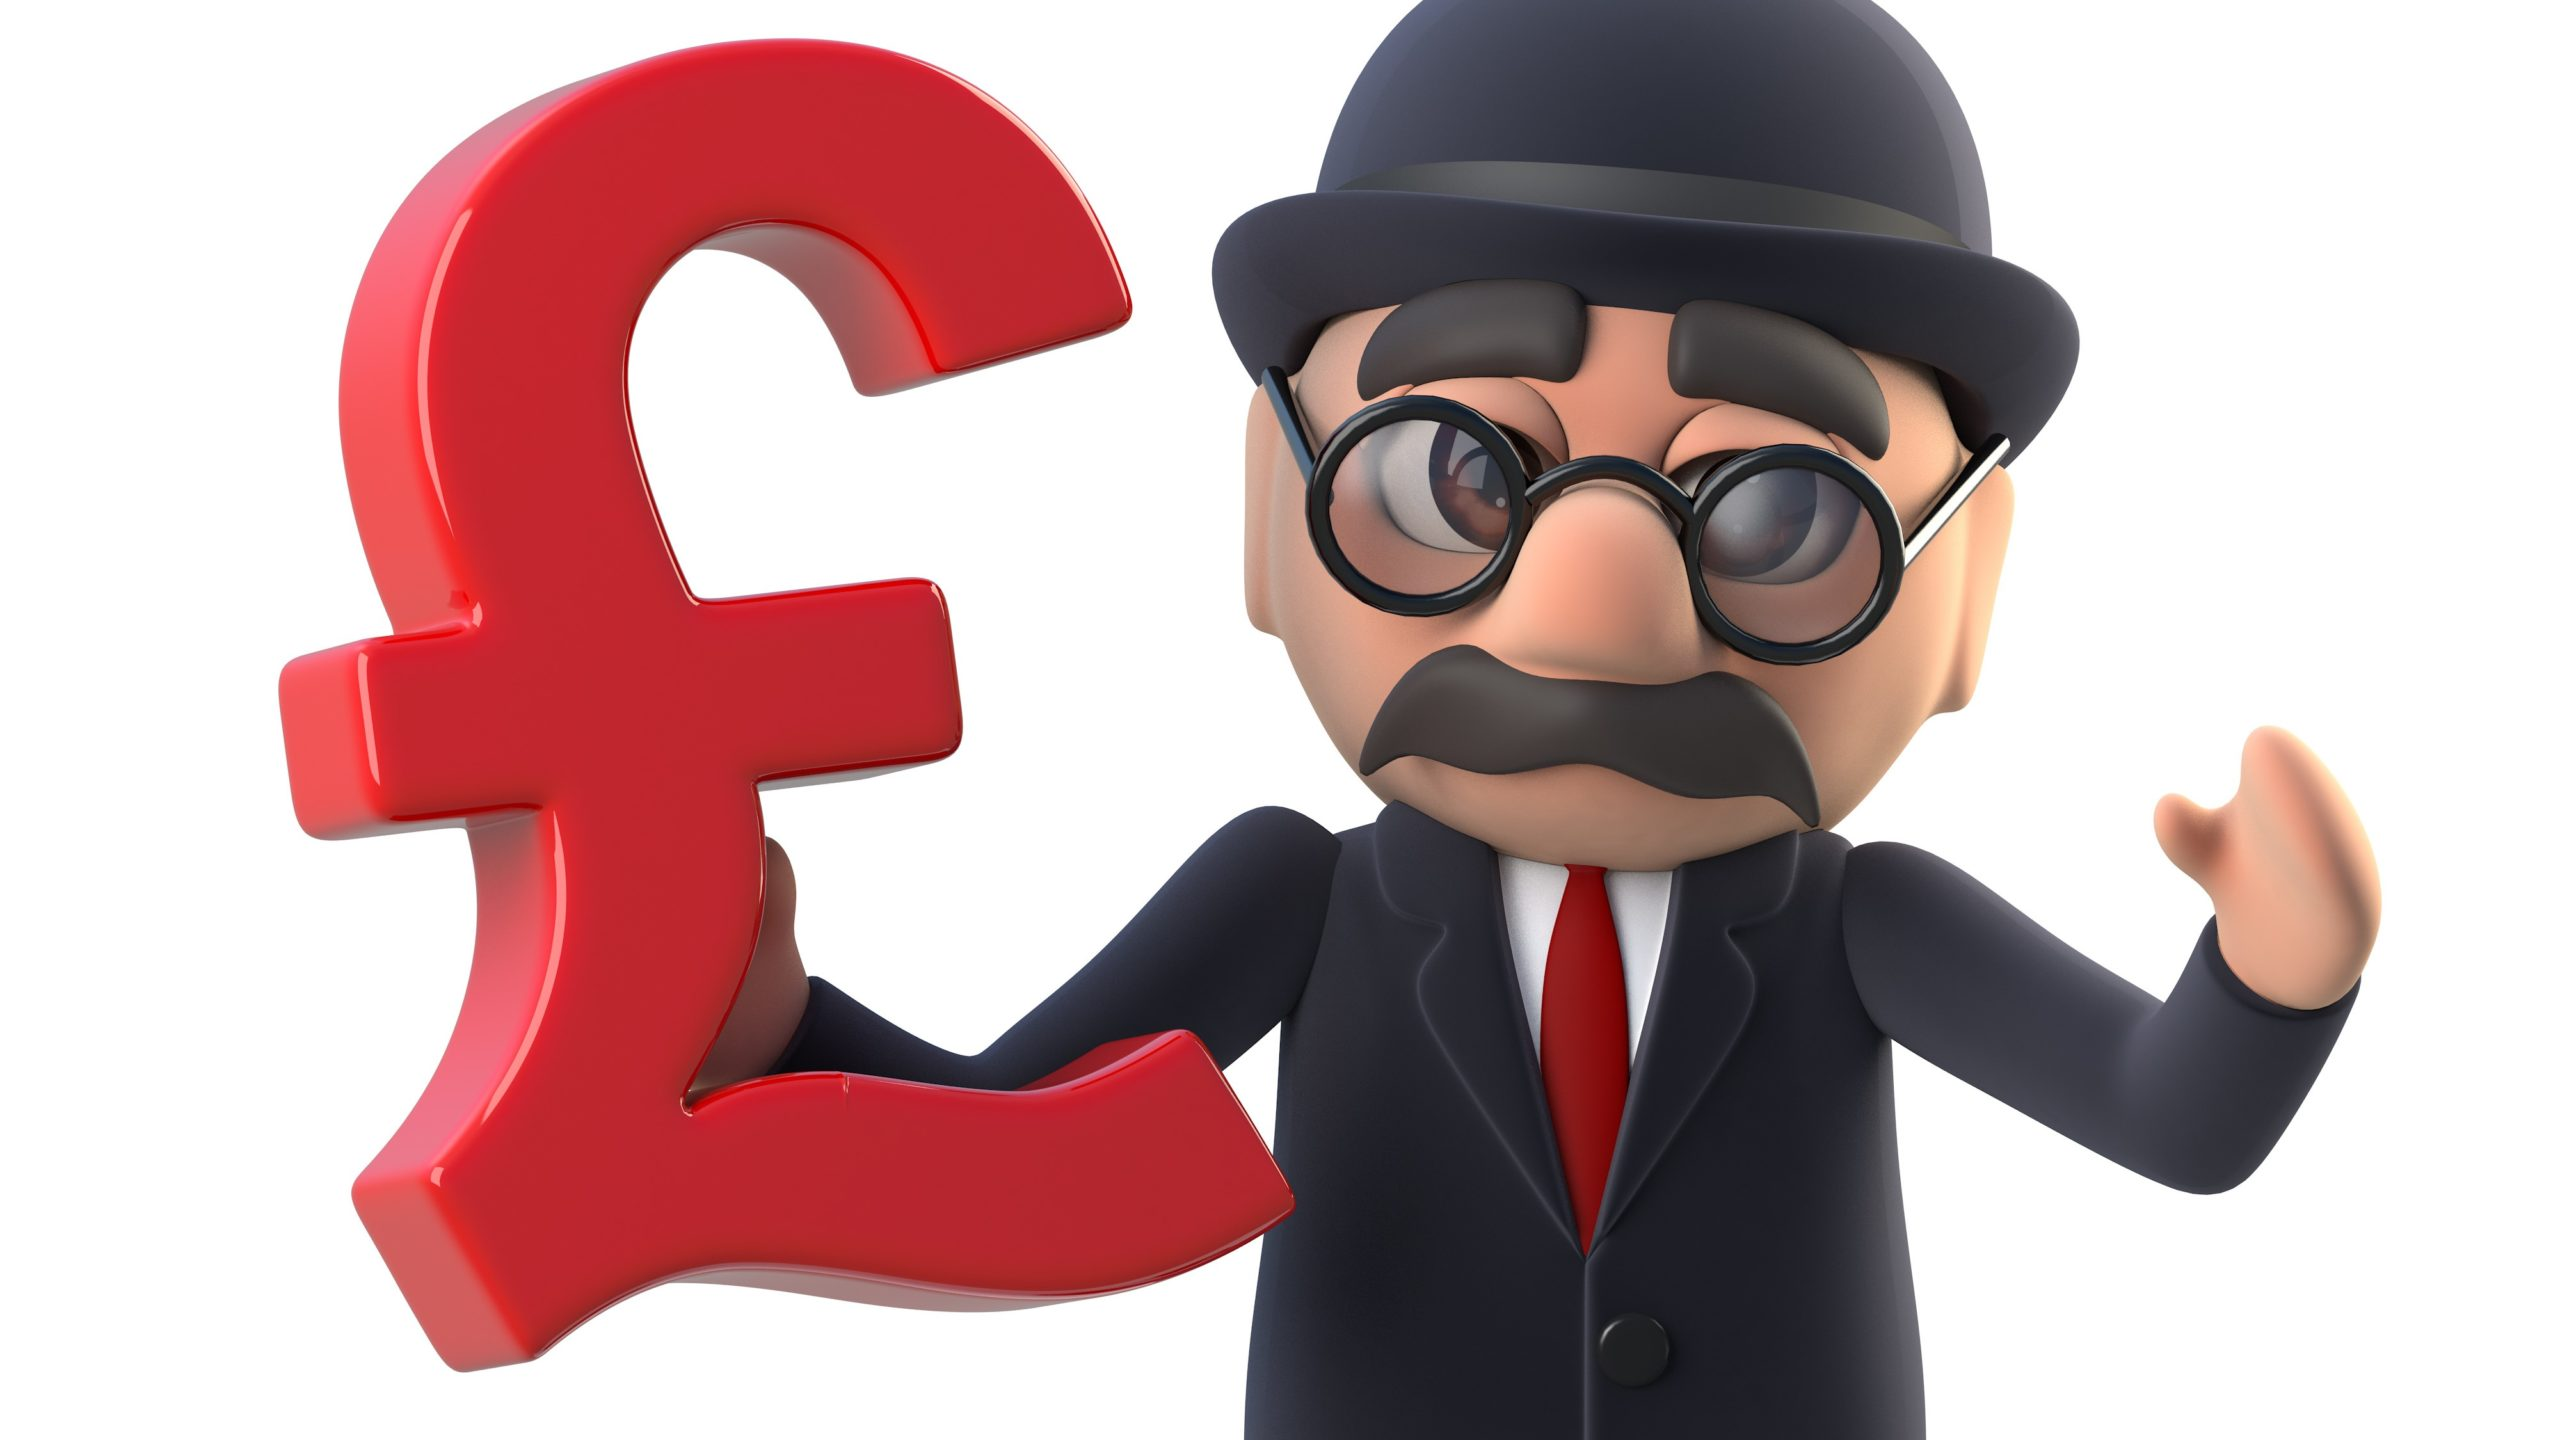 3d render of a bowler hatted British businessman holding UK pound symbol, taxman IR35 concept